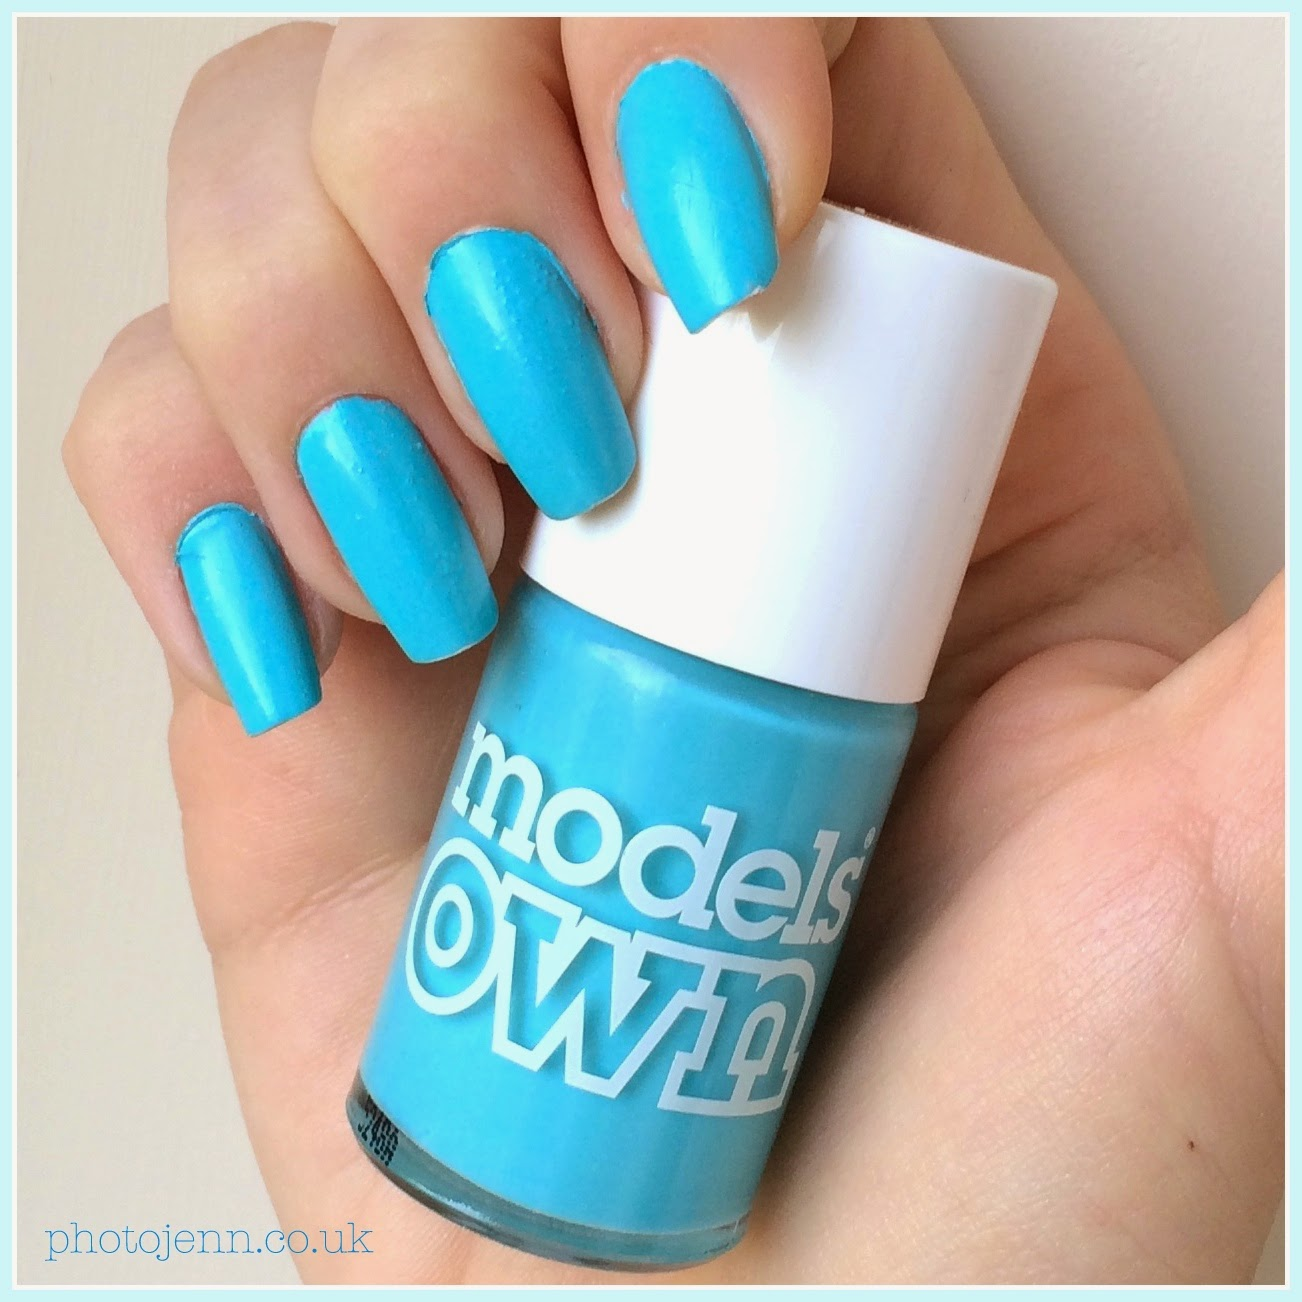 new-shades-models-own-polish-for-tans-2015-turquoise-sea-blue